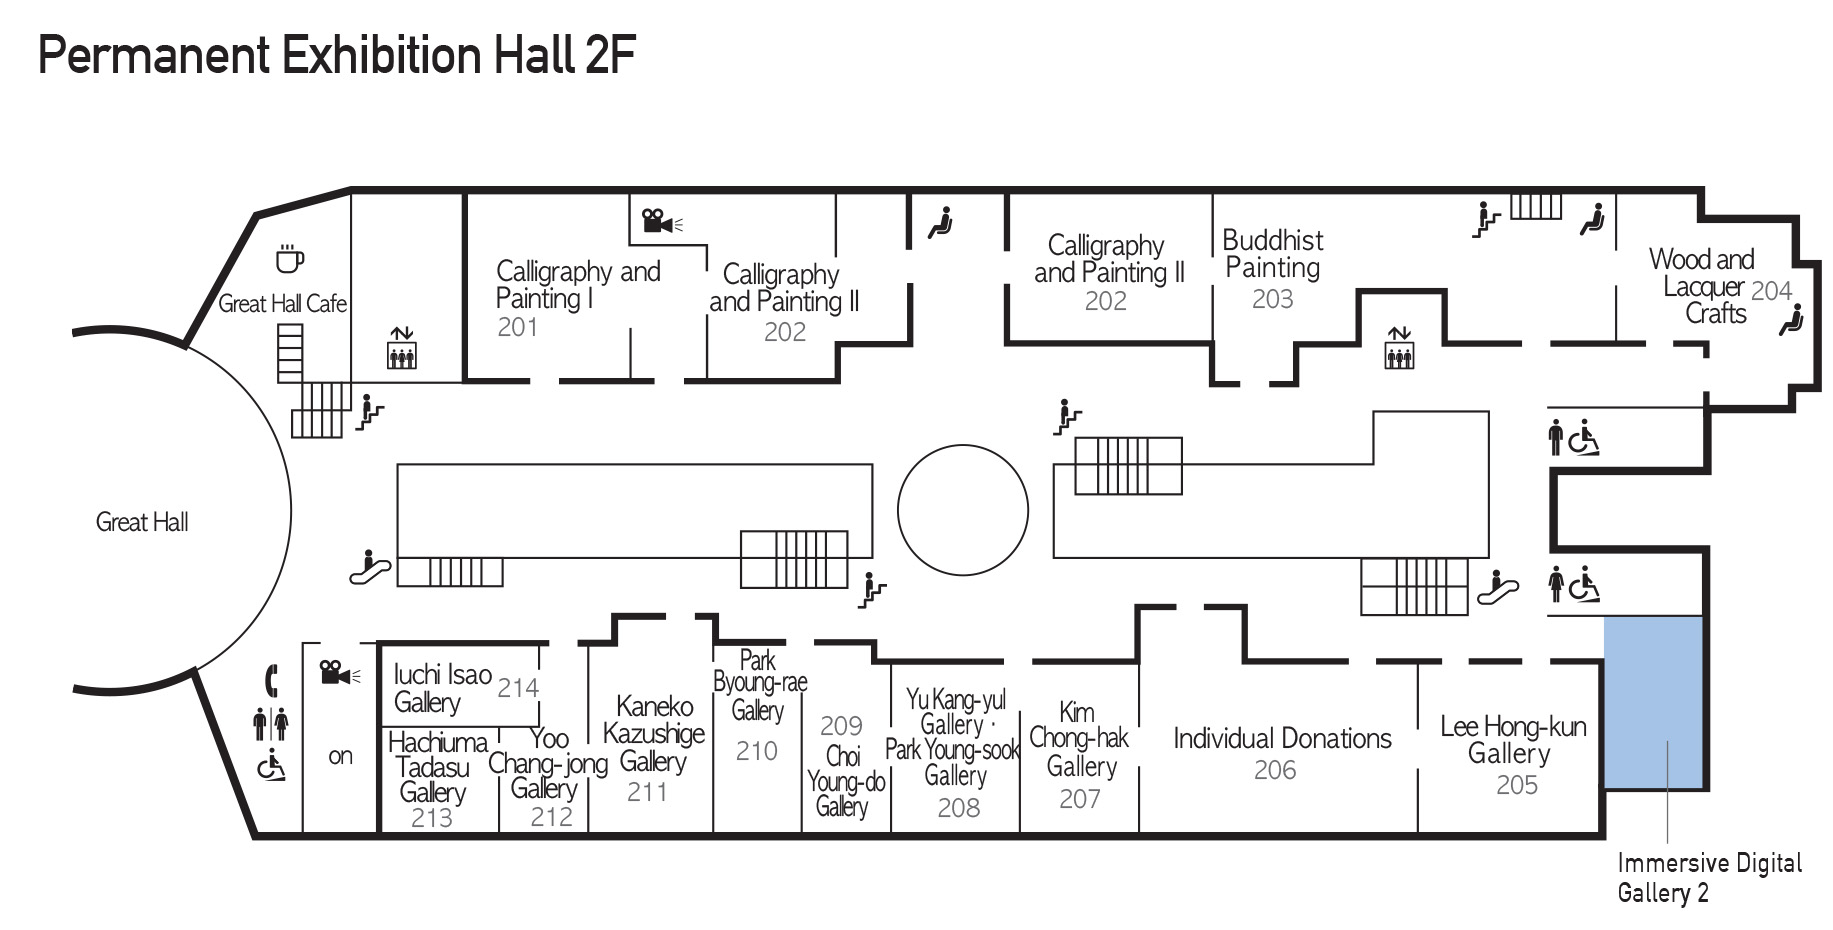 Location of Immersive Digital Gallery 2 on 2F of permanent exhibition hall